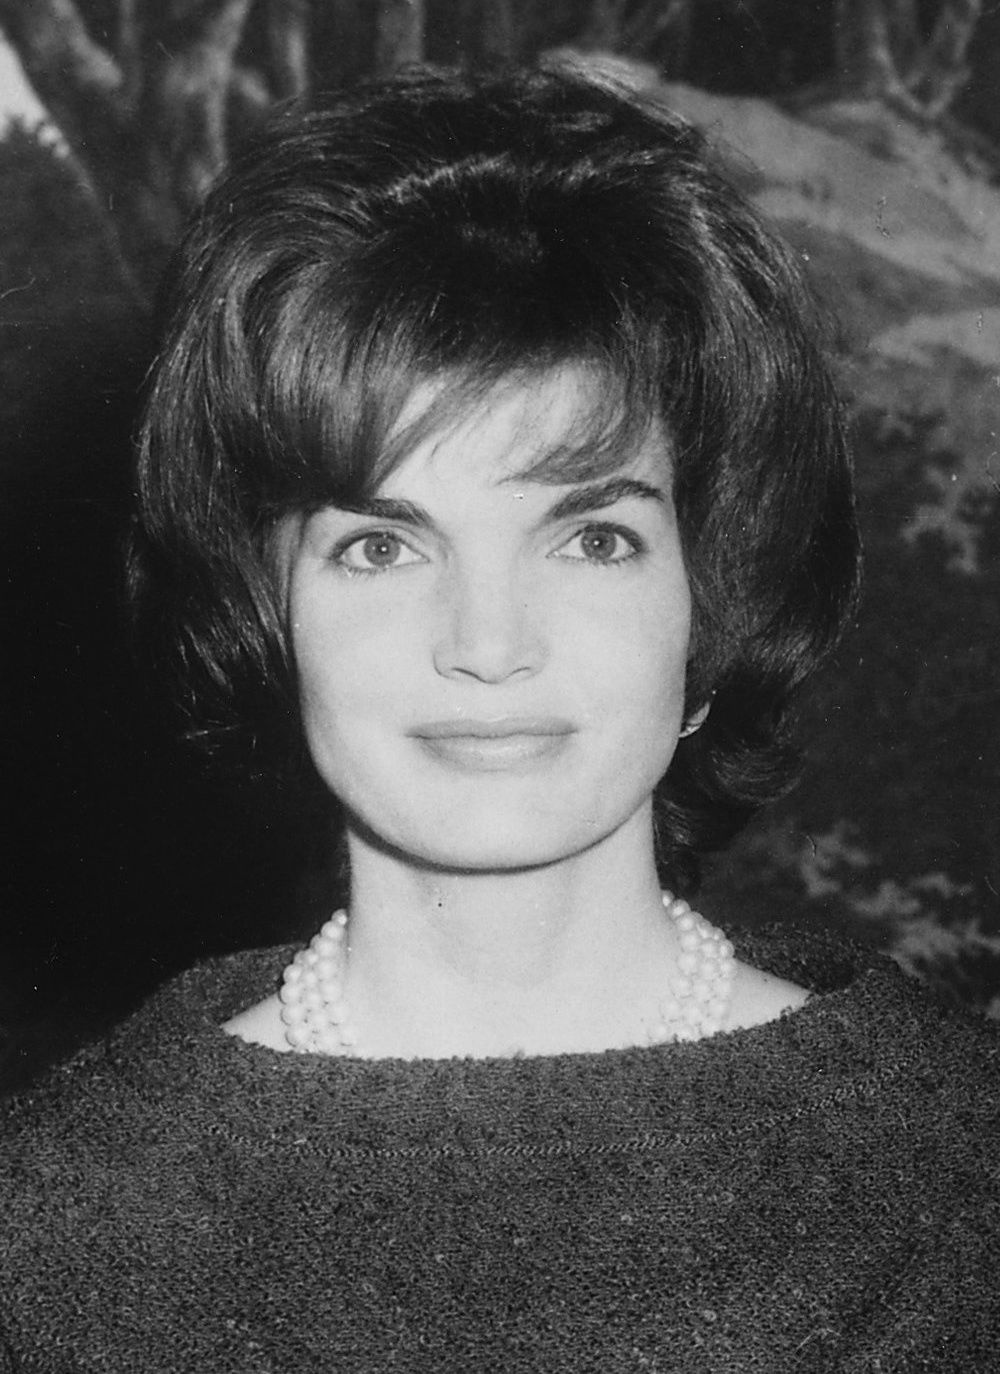 Photo of Jacqueline Kennedy Onassis: Public figure, First Lady to 35th U.S. President John F. Kennedy